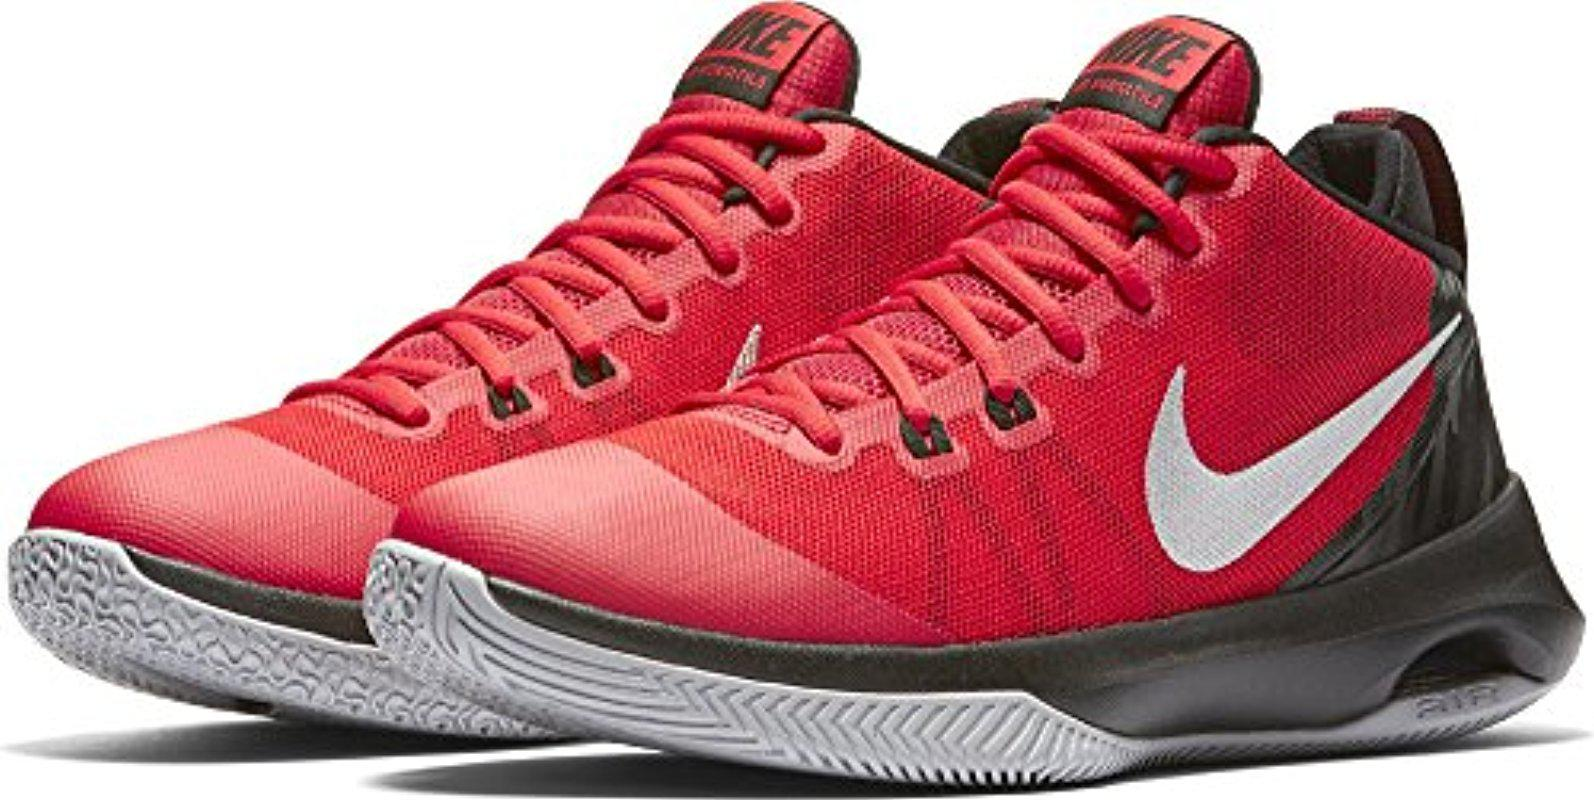 3e9a130636b Lyst - Nike Air Versitile Nubuck Basketball Shoes in Red for Men